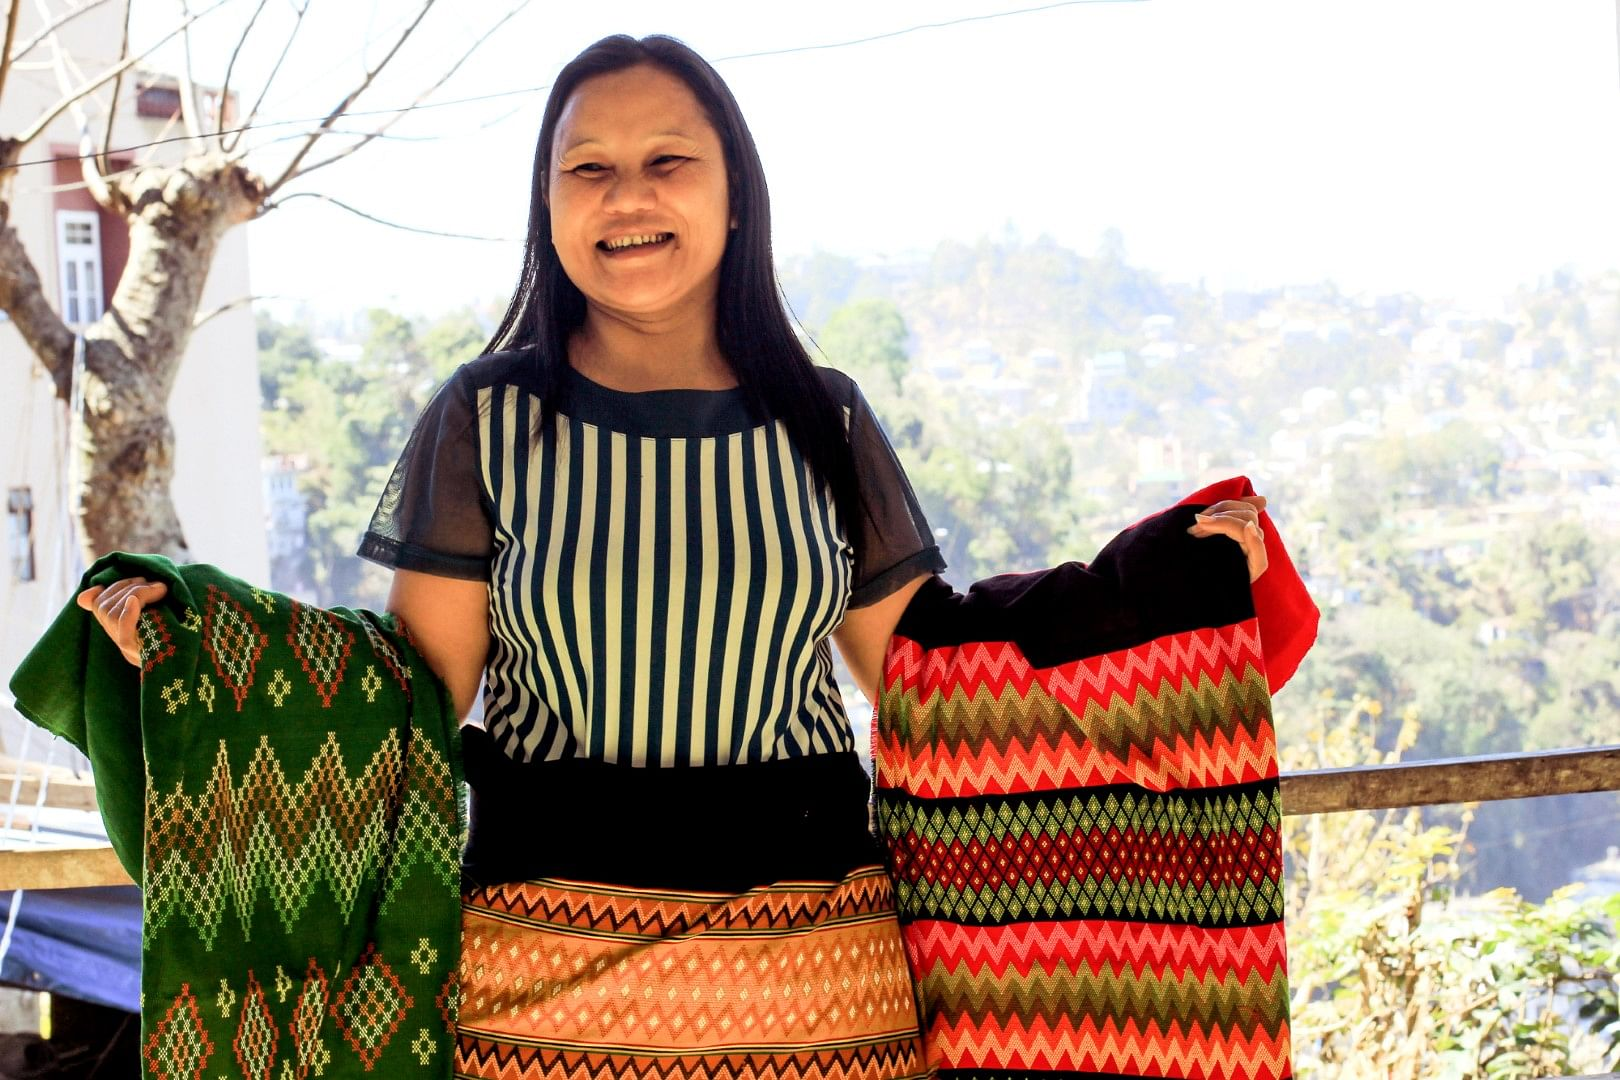 The amazing shauls and handicraft items help this family to secure a better future for their kids.